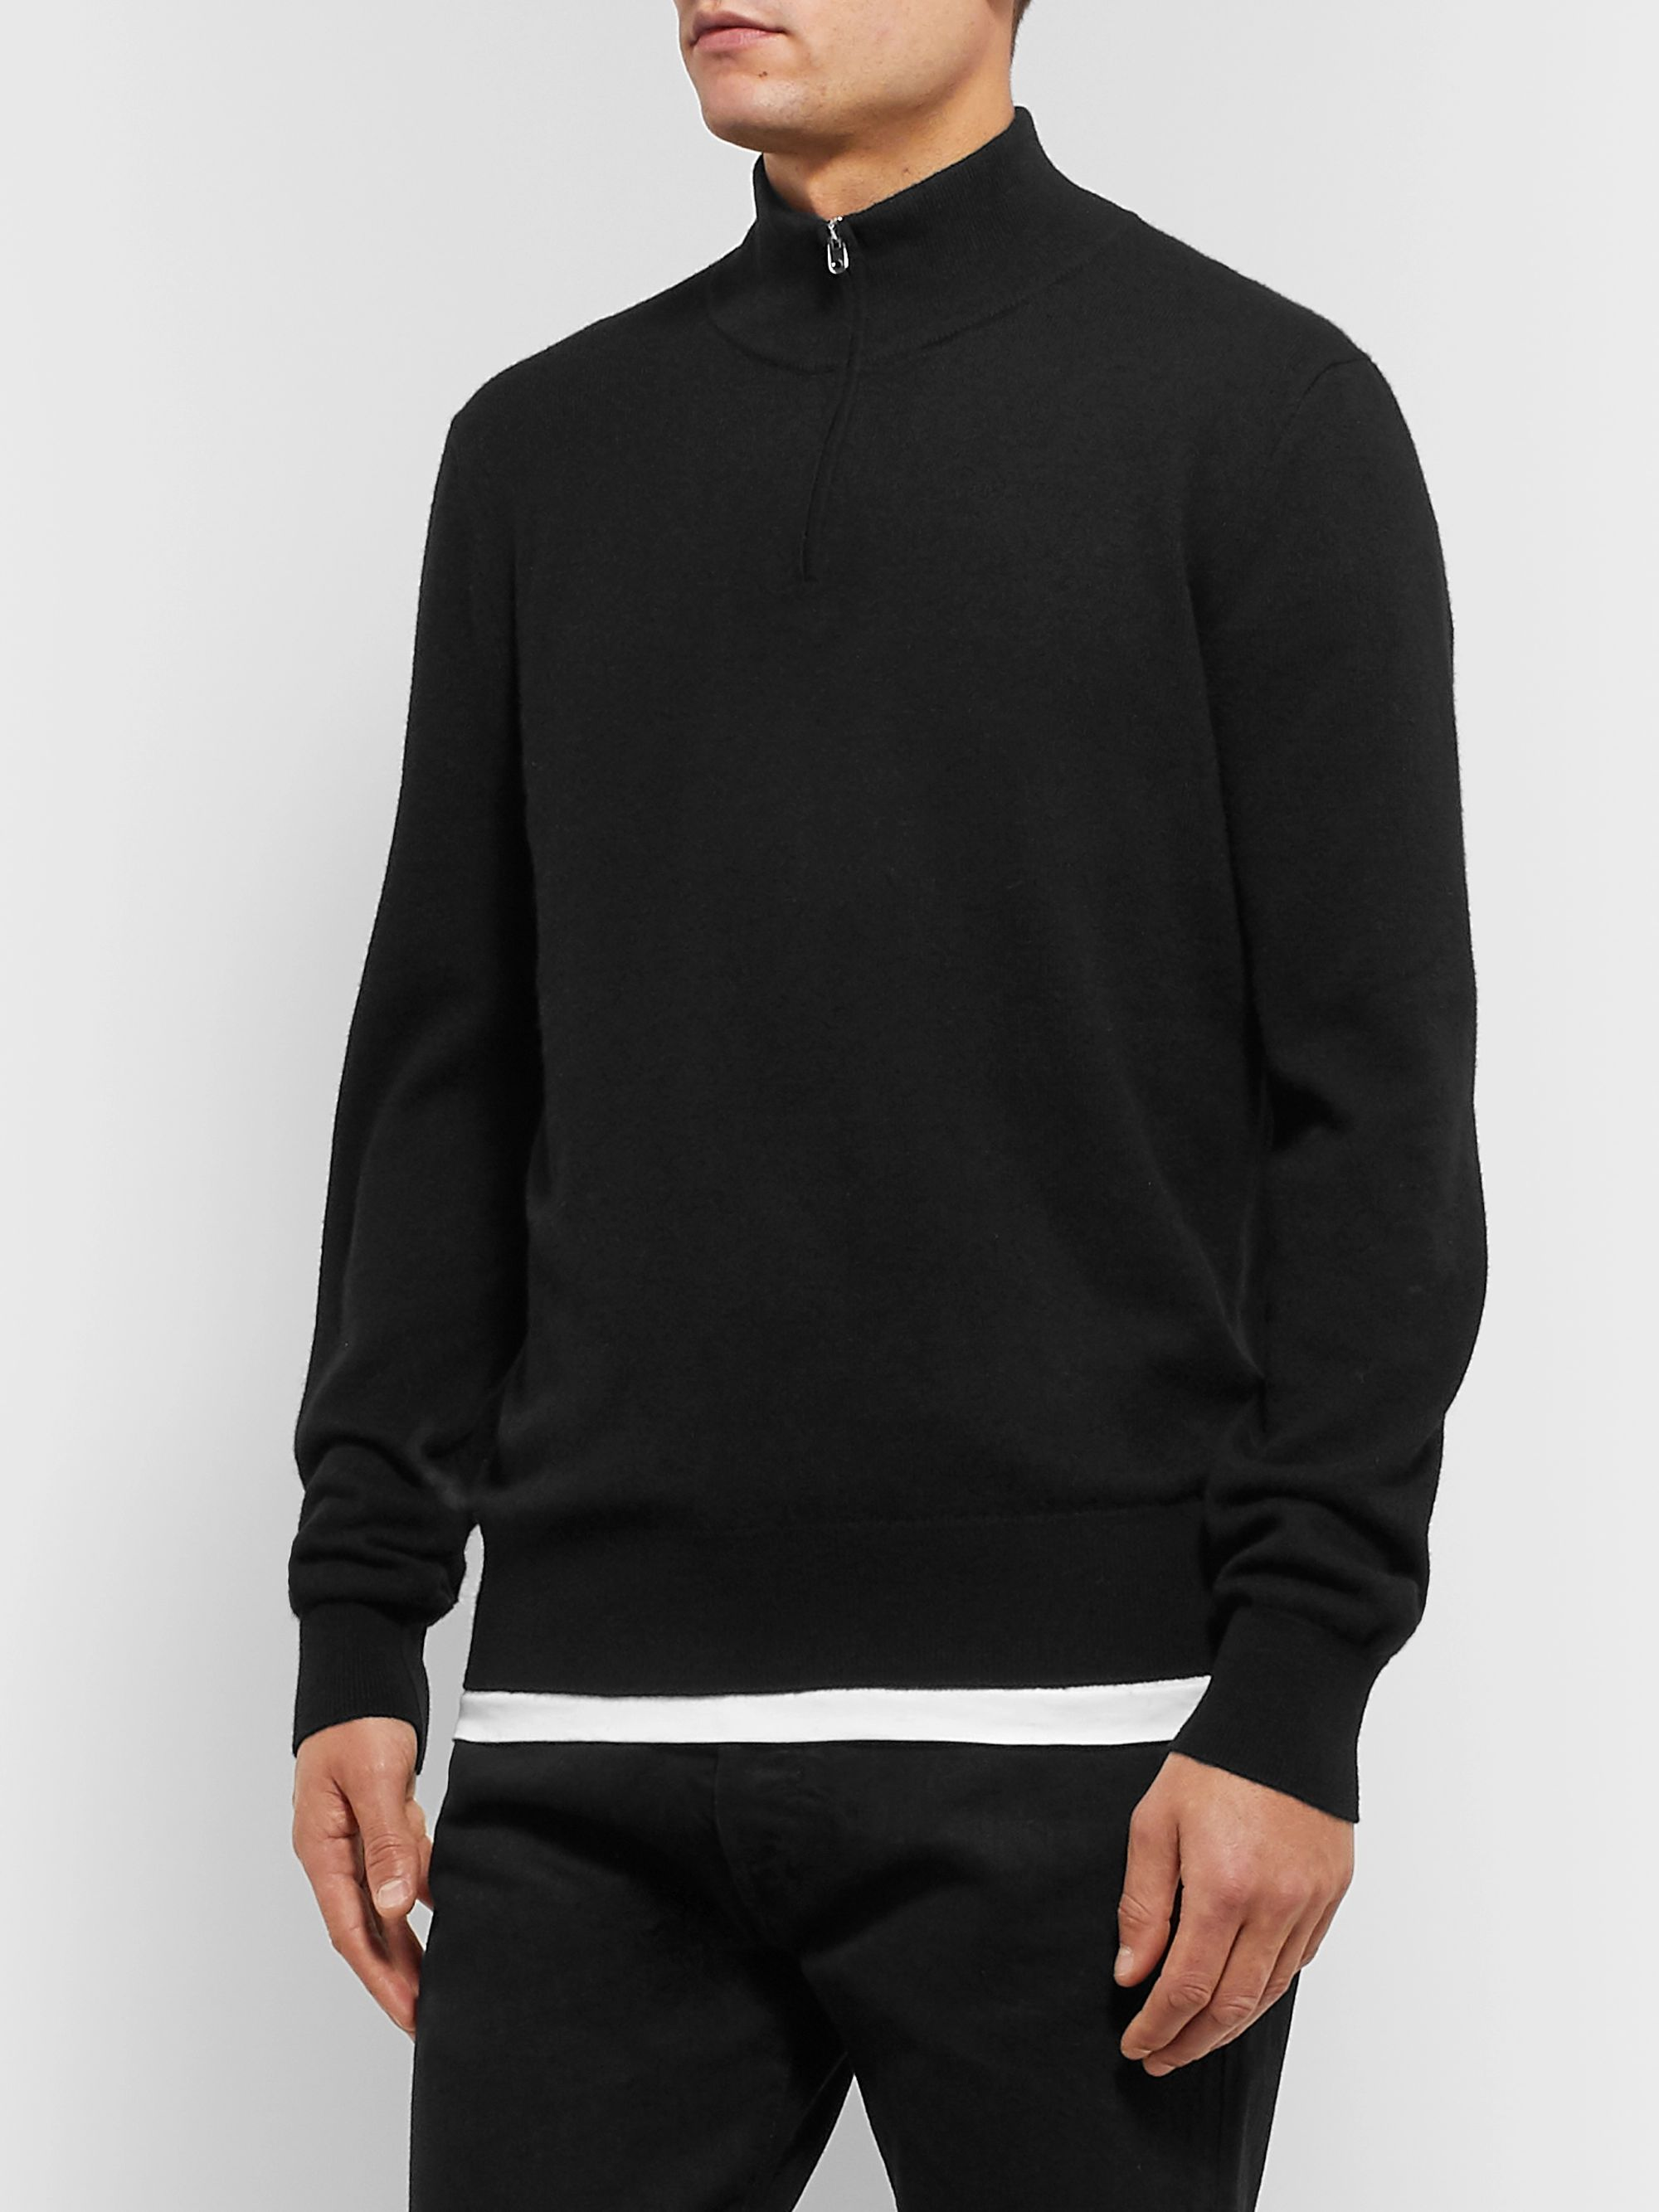 The Row Dexter Cashmere Half-Zip Sweater